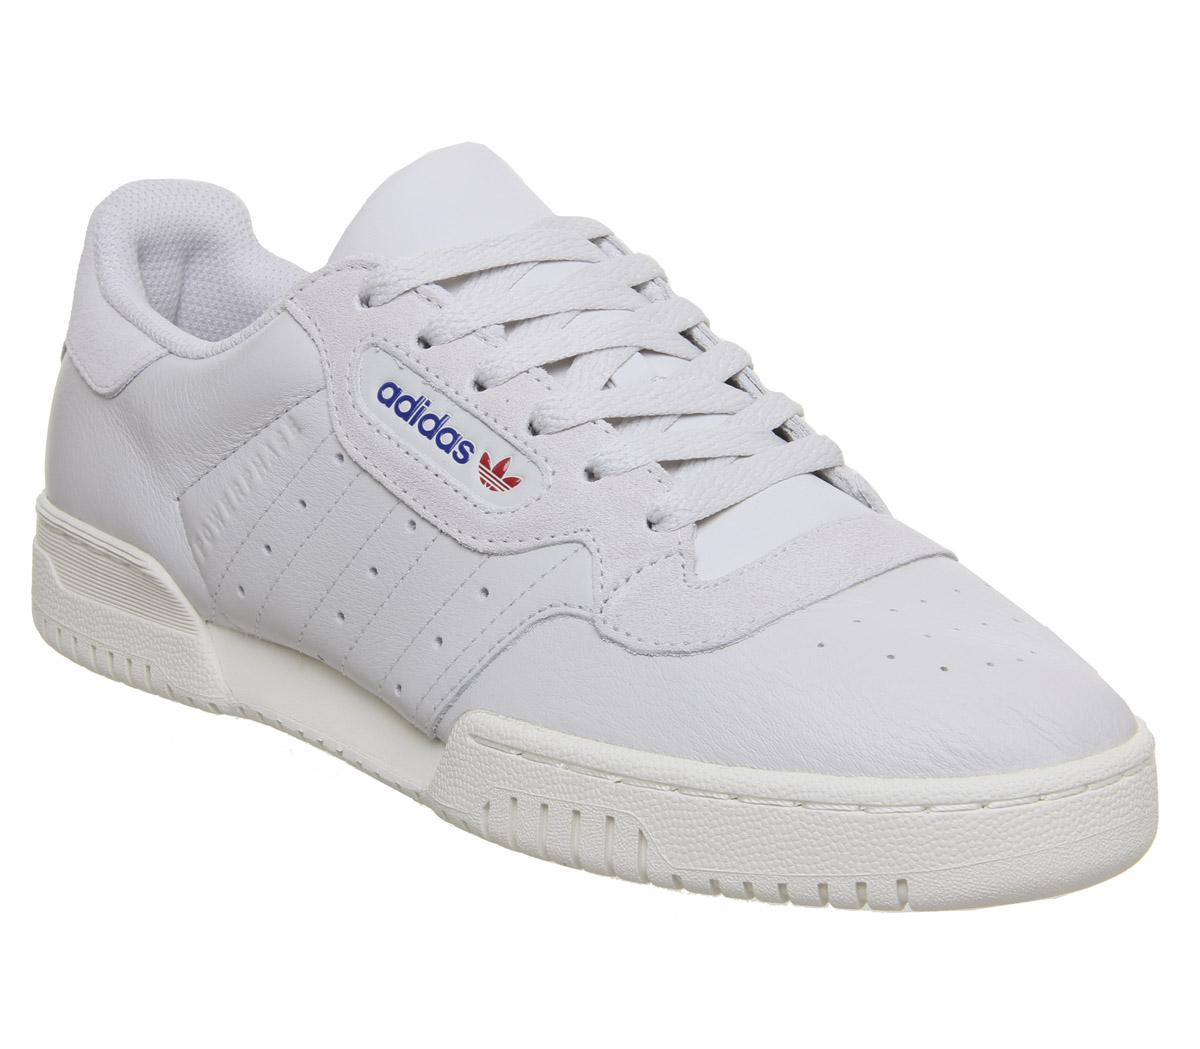 Powerphase Trainers